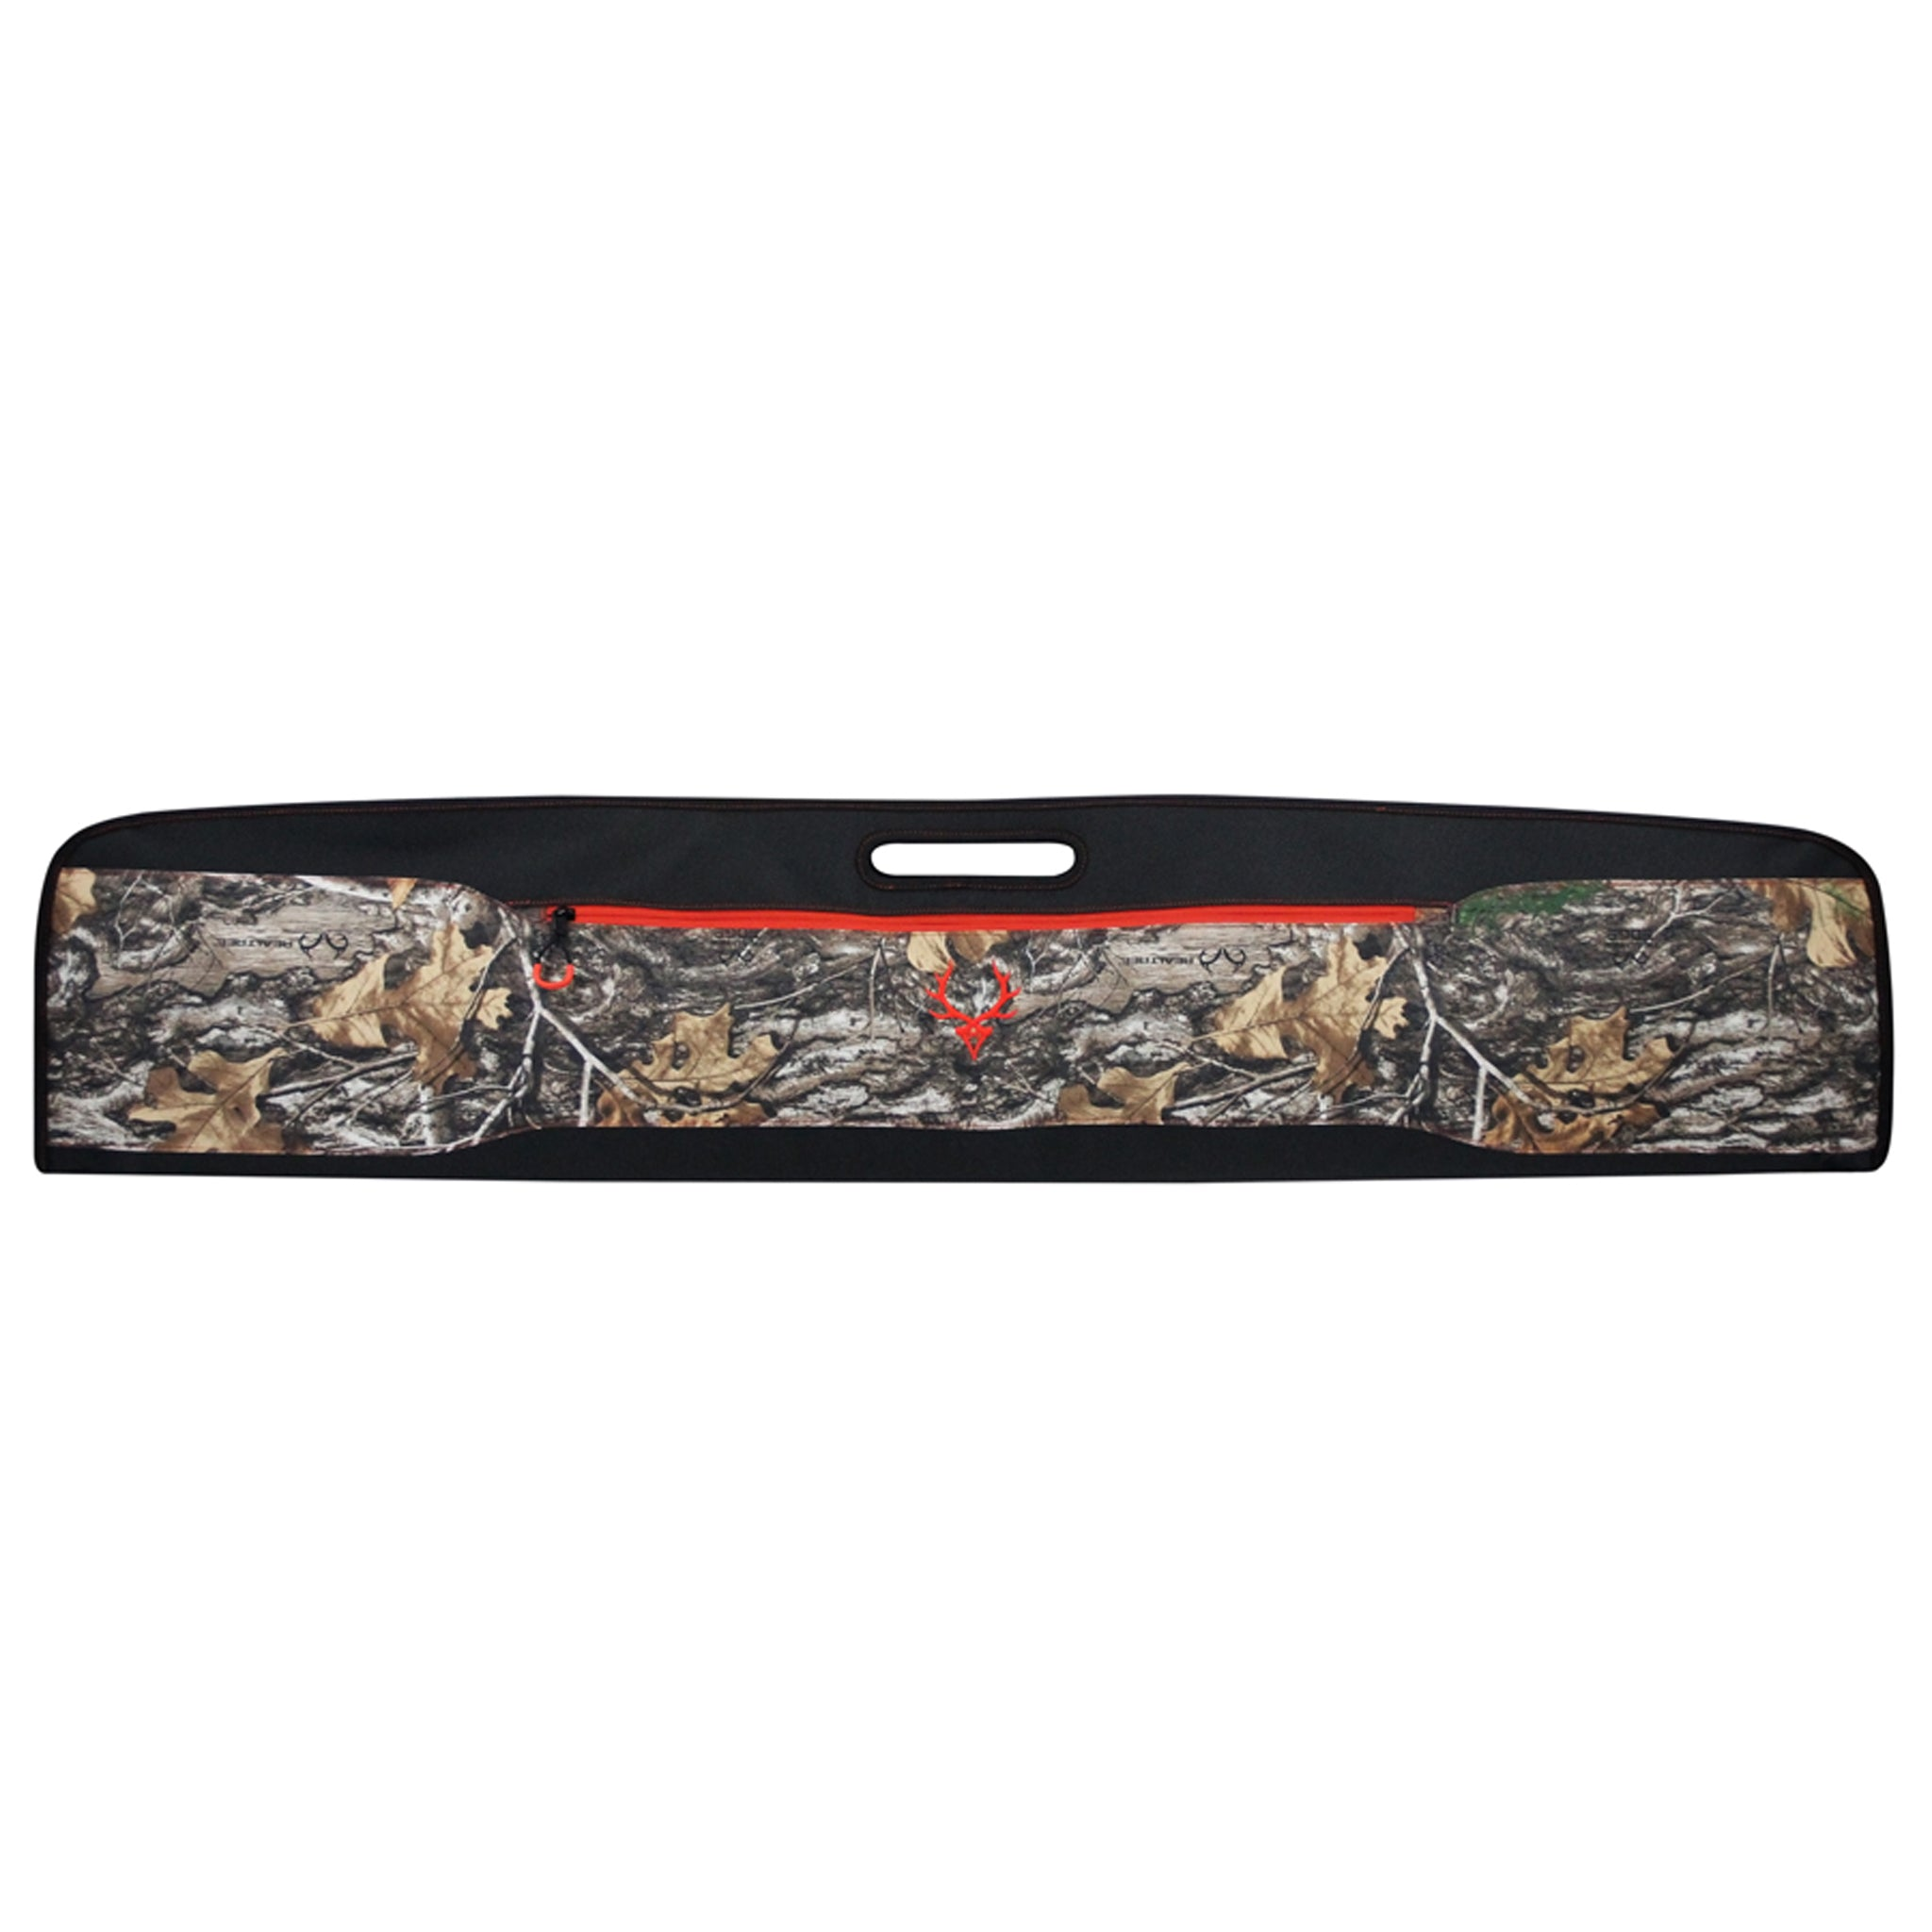 Marksman Series RealTree Gun Case - Rifle or Shotgun